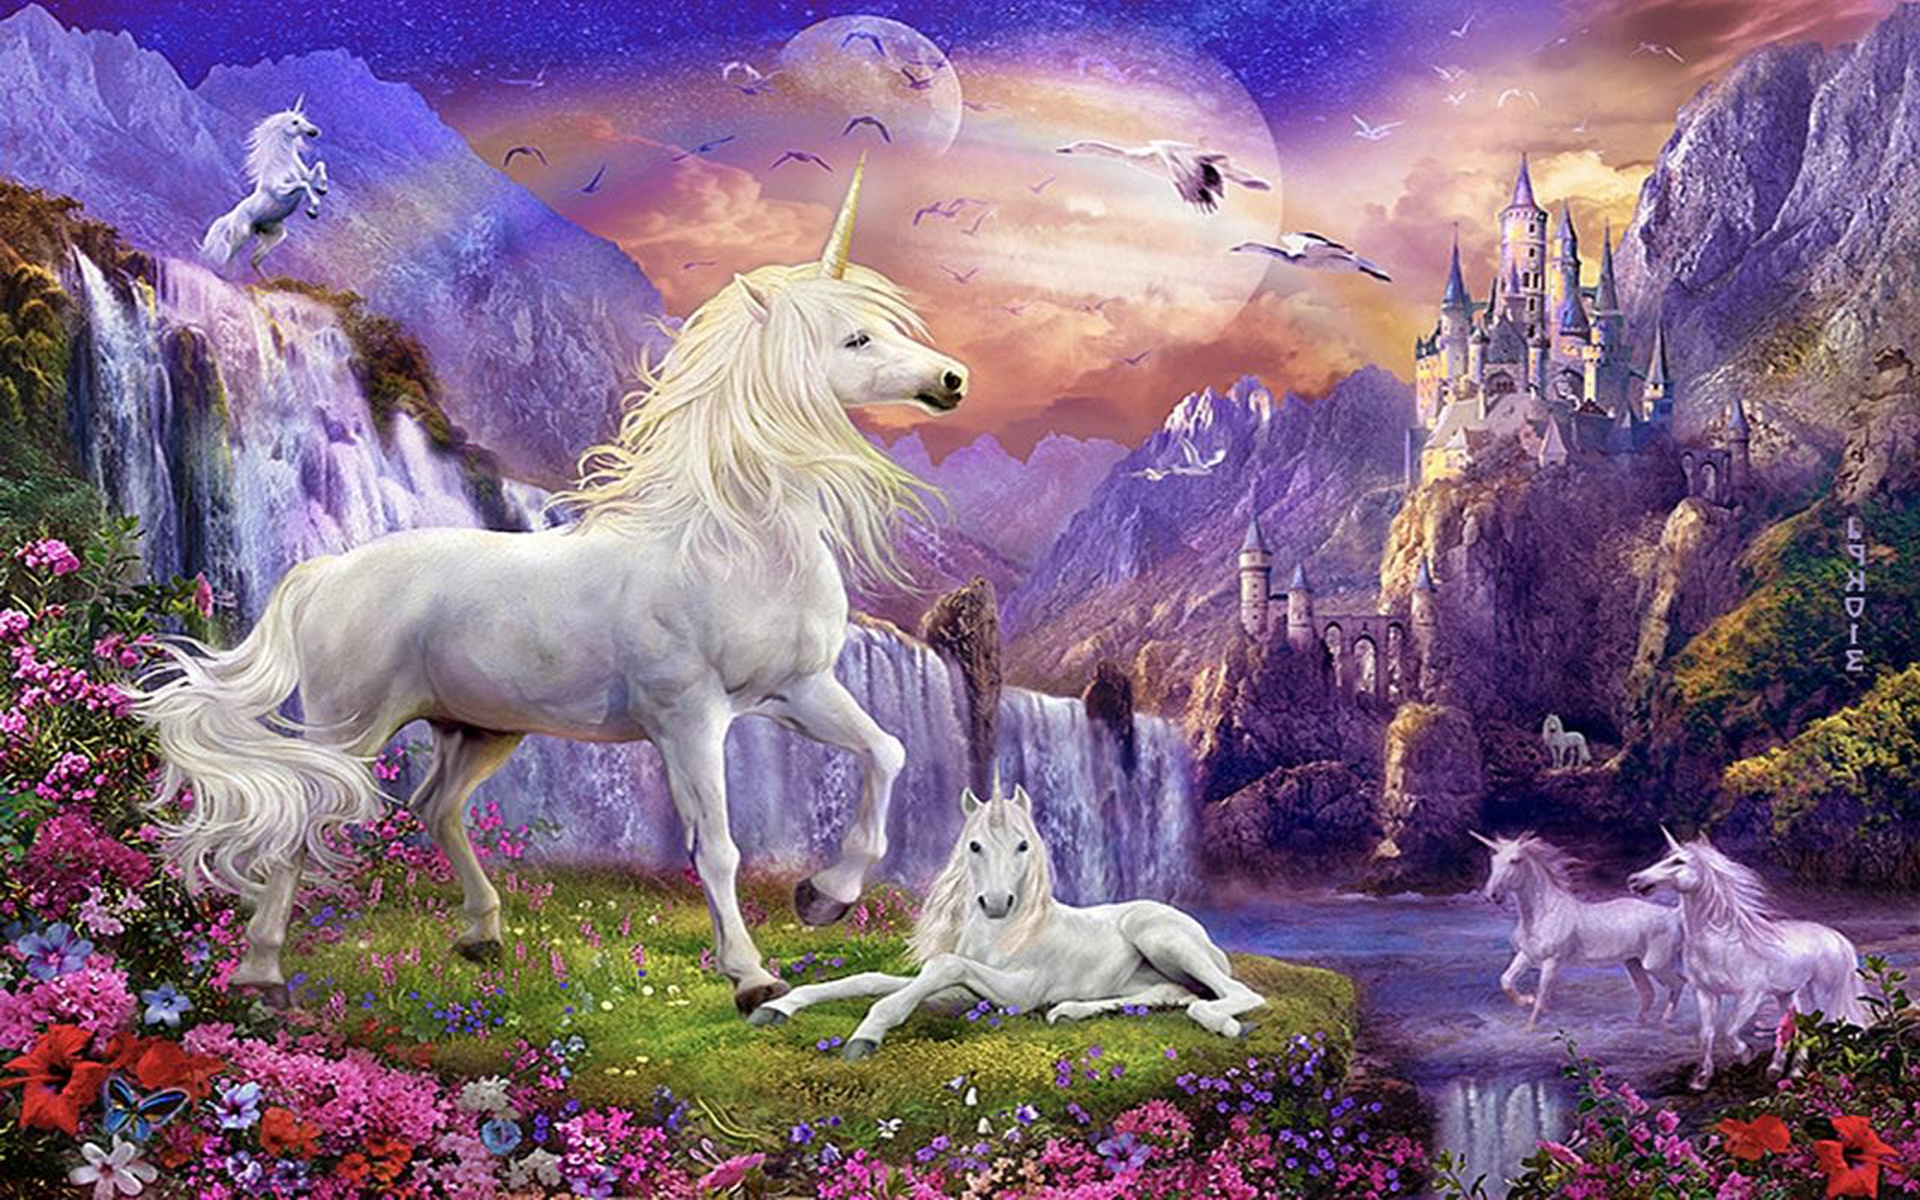 Free Iphone Wallpapers Cute Fantasy Wallpaper Hd Unicorns Horse Castles Waterfalls